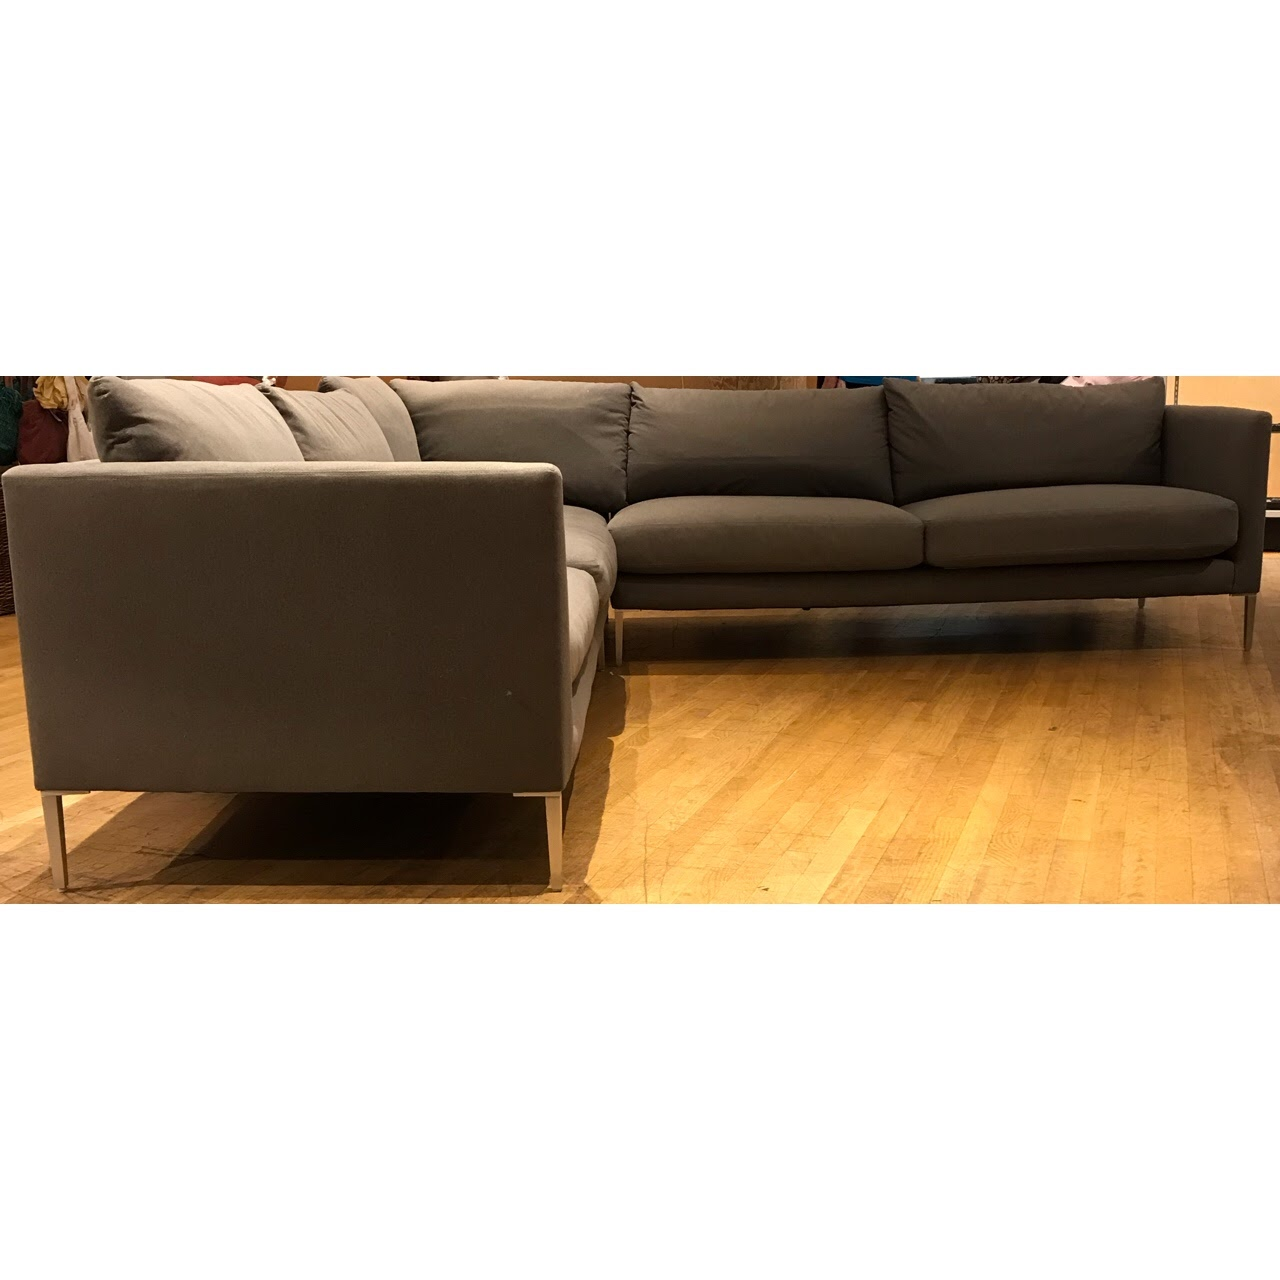 Room And Board Sectional Sofa Shop Housingworks Org